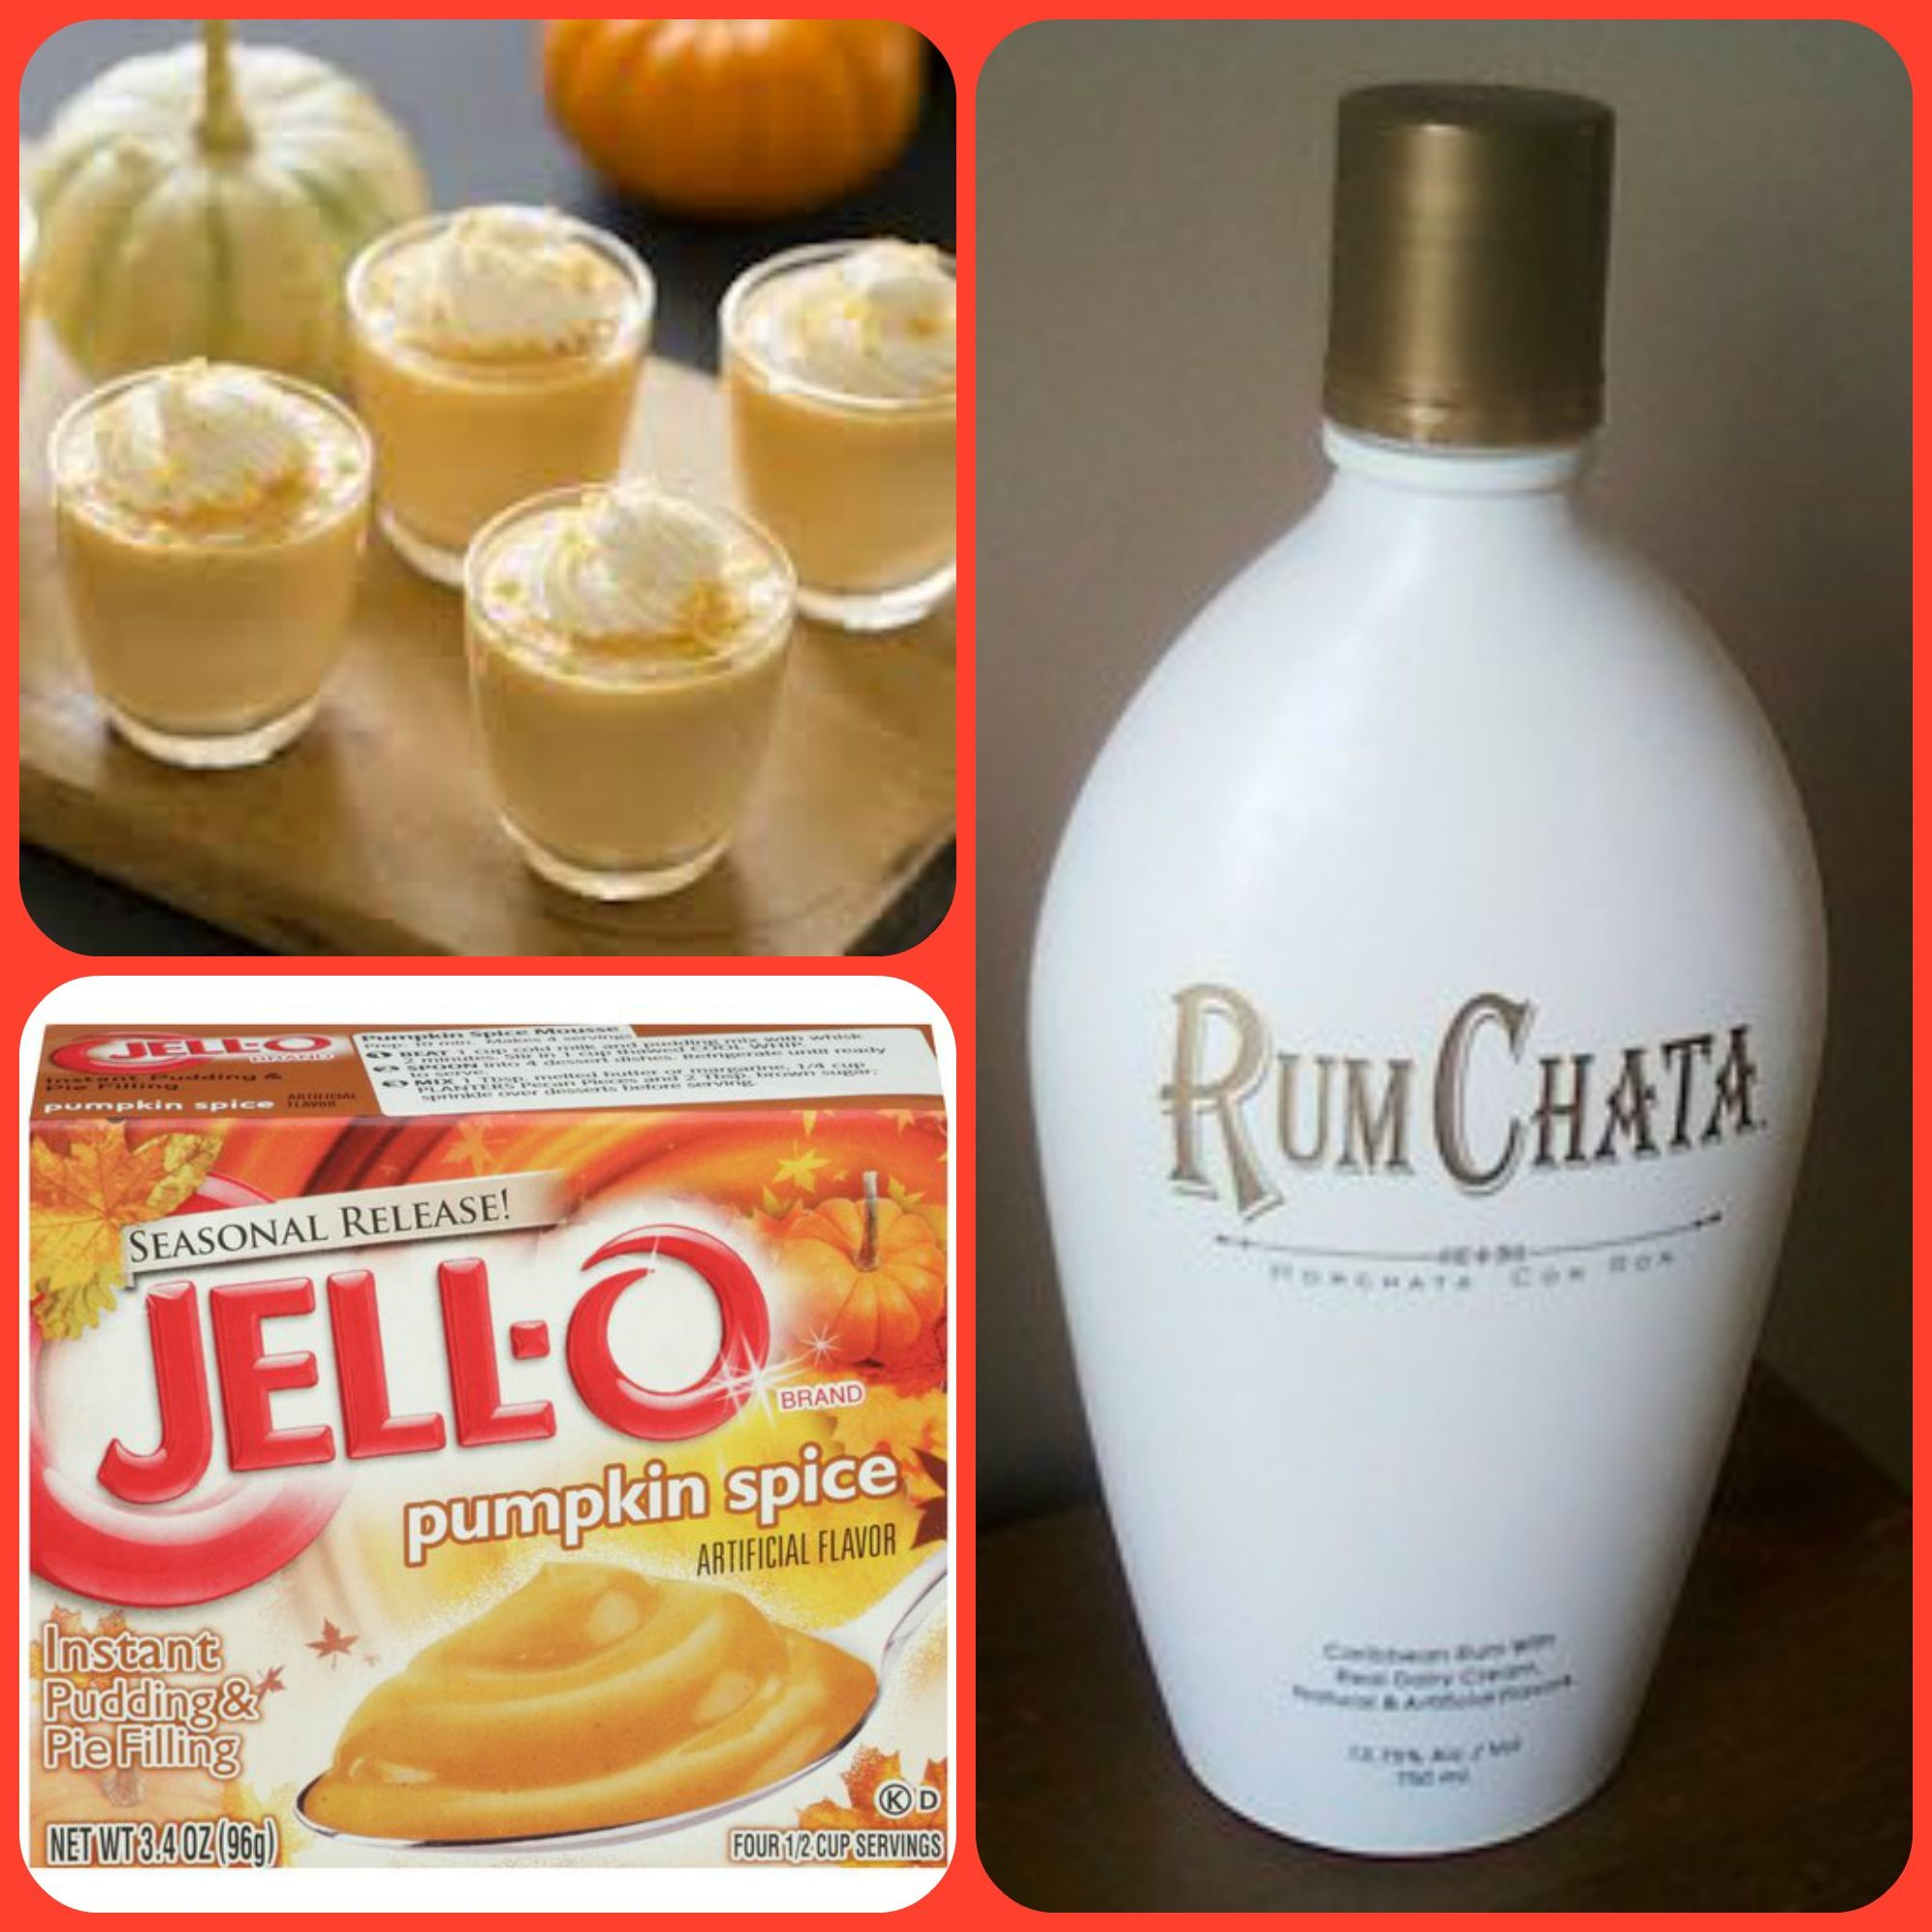 Rumchata Pumpkin Pie Pudding Shots 1 small Pkg. pumpkin spice ...